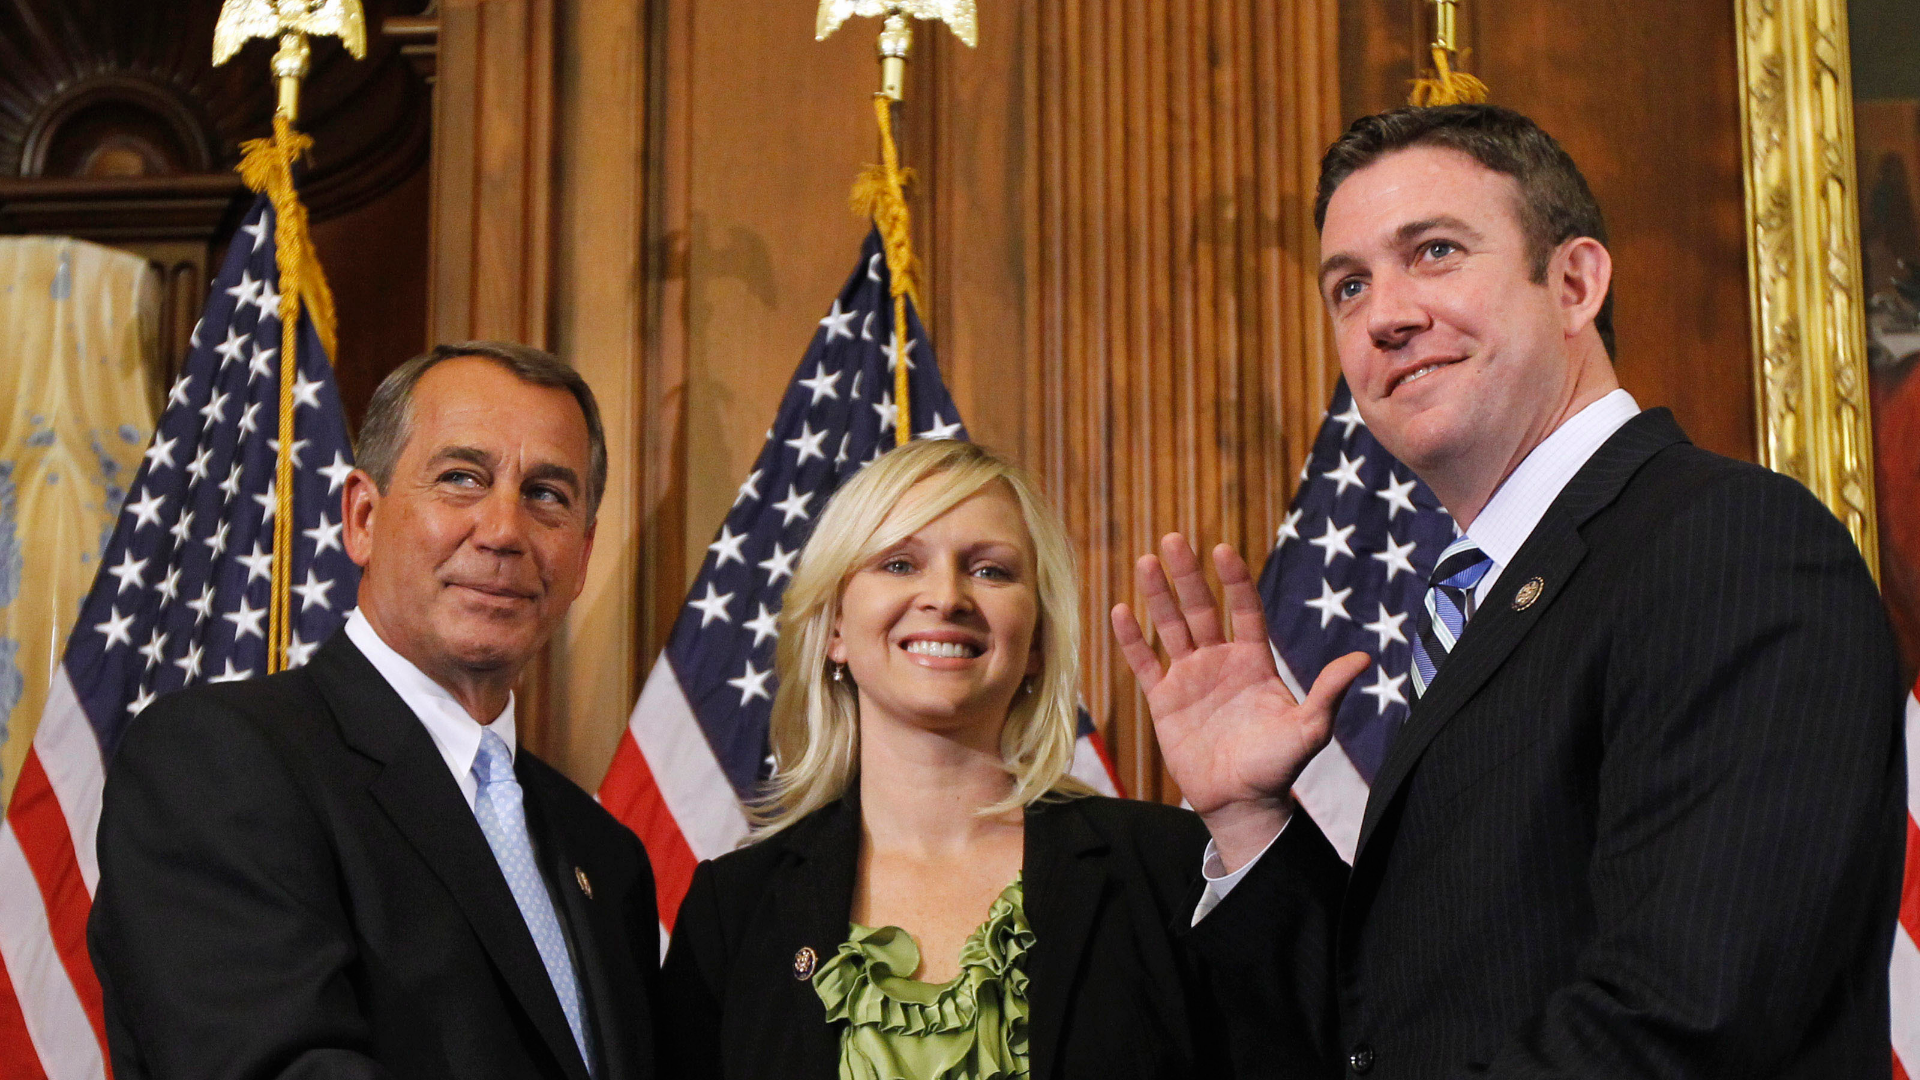 Rep. Duncan Hunter used campaign money to fund extramarital affairs, prosecutors allege